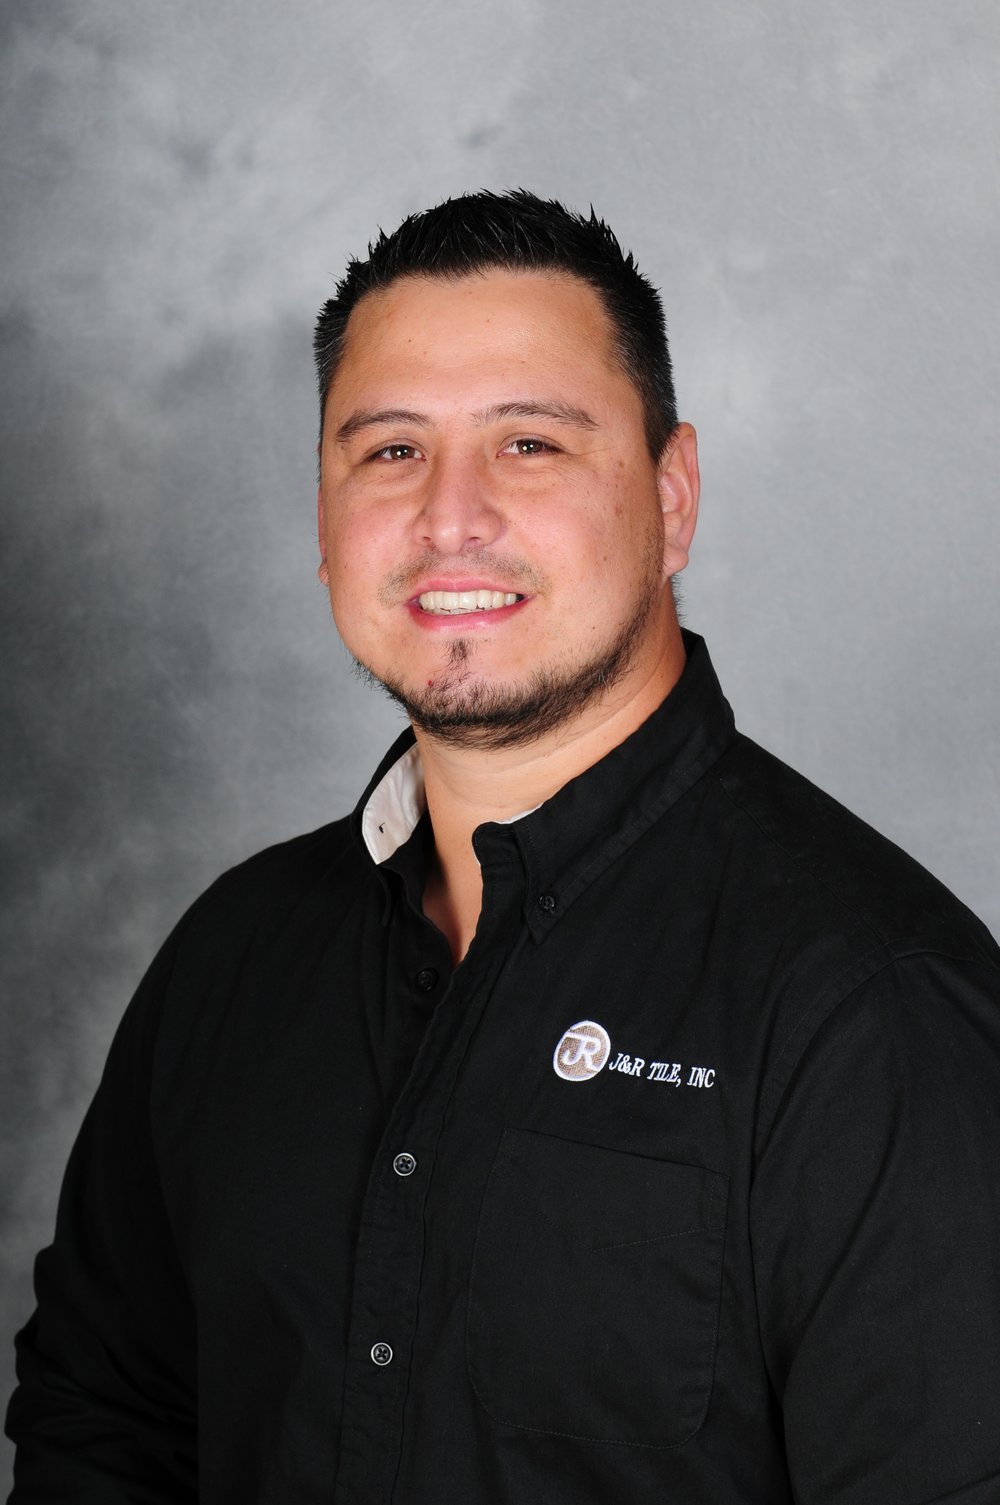 Adam Arellano Advanced Certified Installer, Certified Tile Installer, Stonepeak Plane Large Porcelain Panel Certified, Dekton Cosentino Installer Certified, Wedi Pro Installer, Moisture Remediation Systems - Ardex Academy, Self Leveling Systems-Ardex Academy, Schluter Systems Shower Installer Certified  & Heated Underlayment